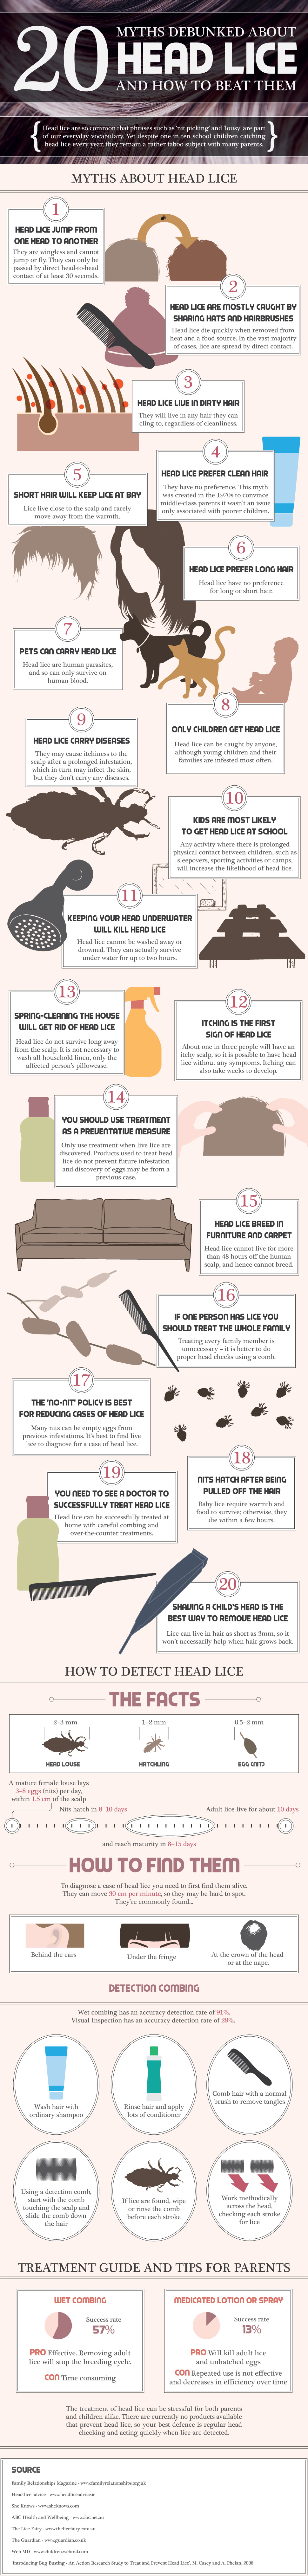 Myths about head lice infographic